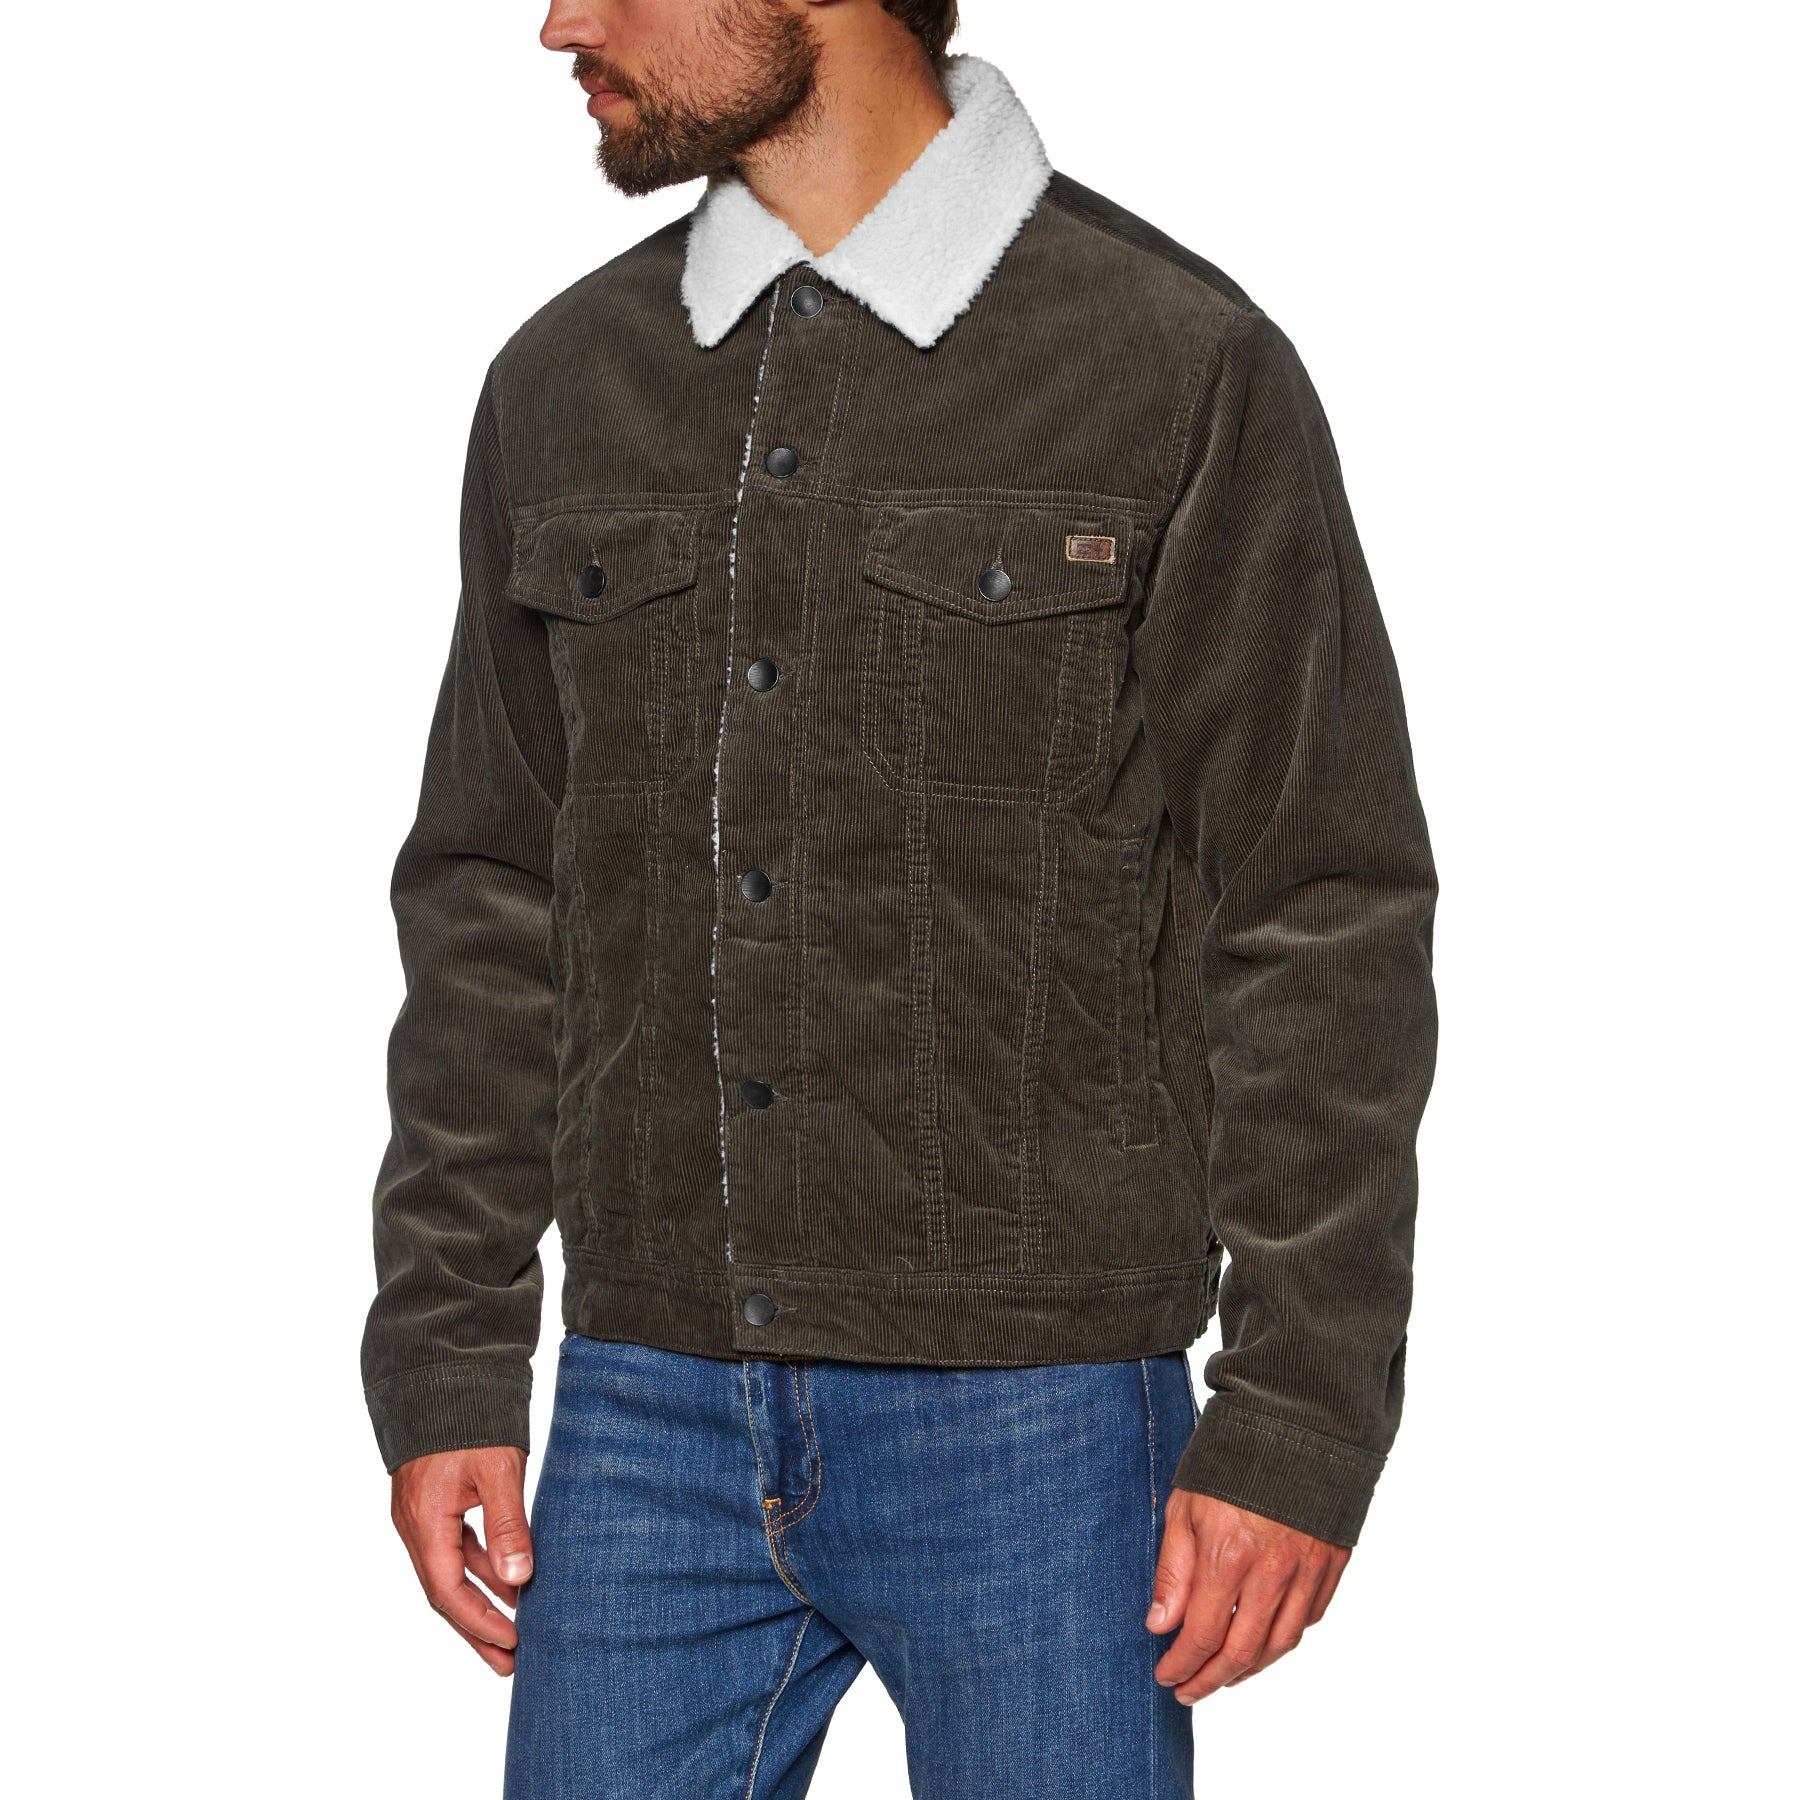 Billabong Barlow Trucker Jacket - Coffee